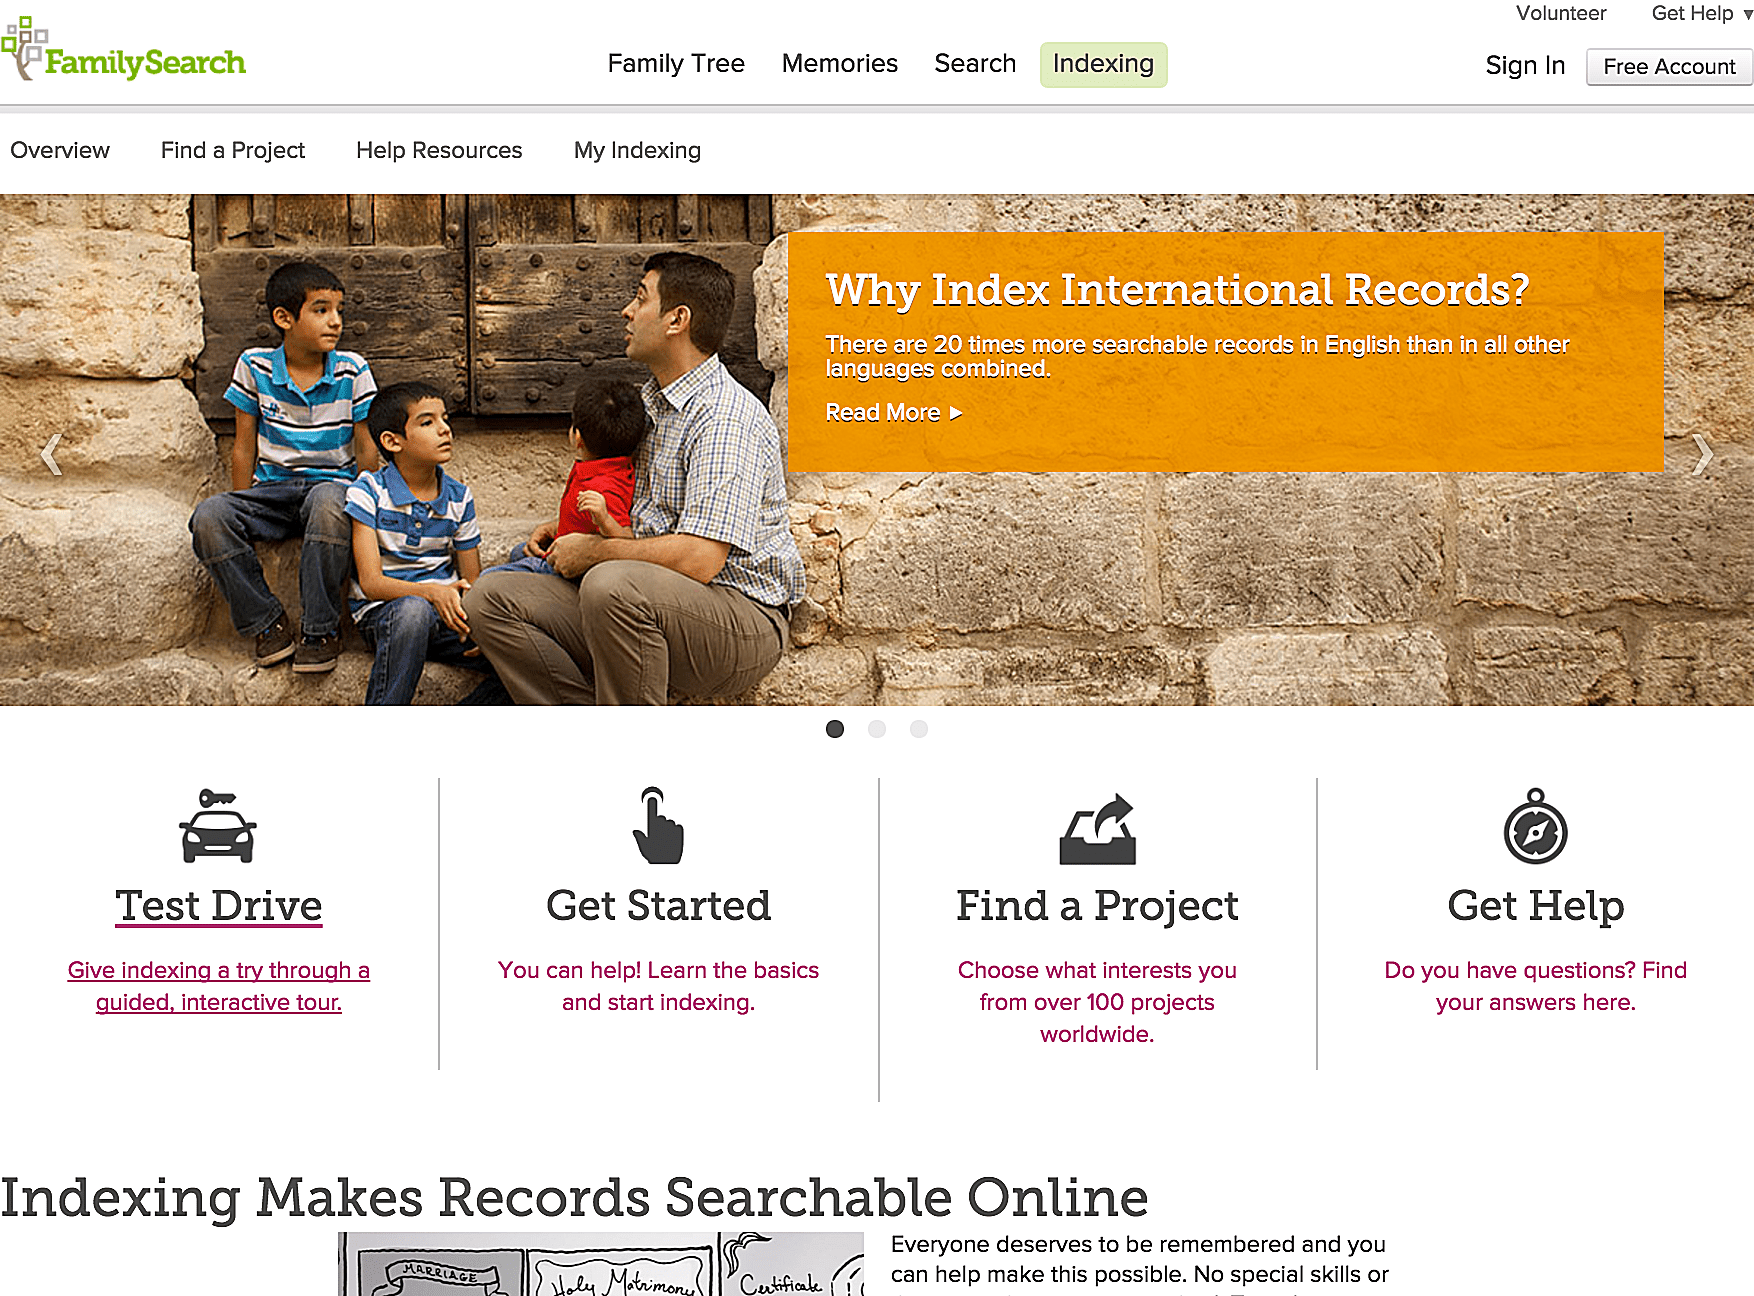 How to Become a FamilySearch Indexing Volunteer